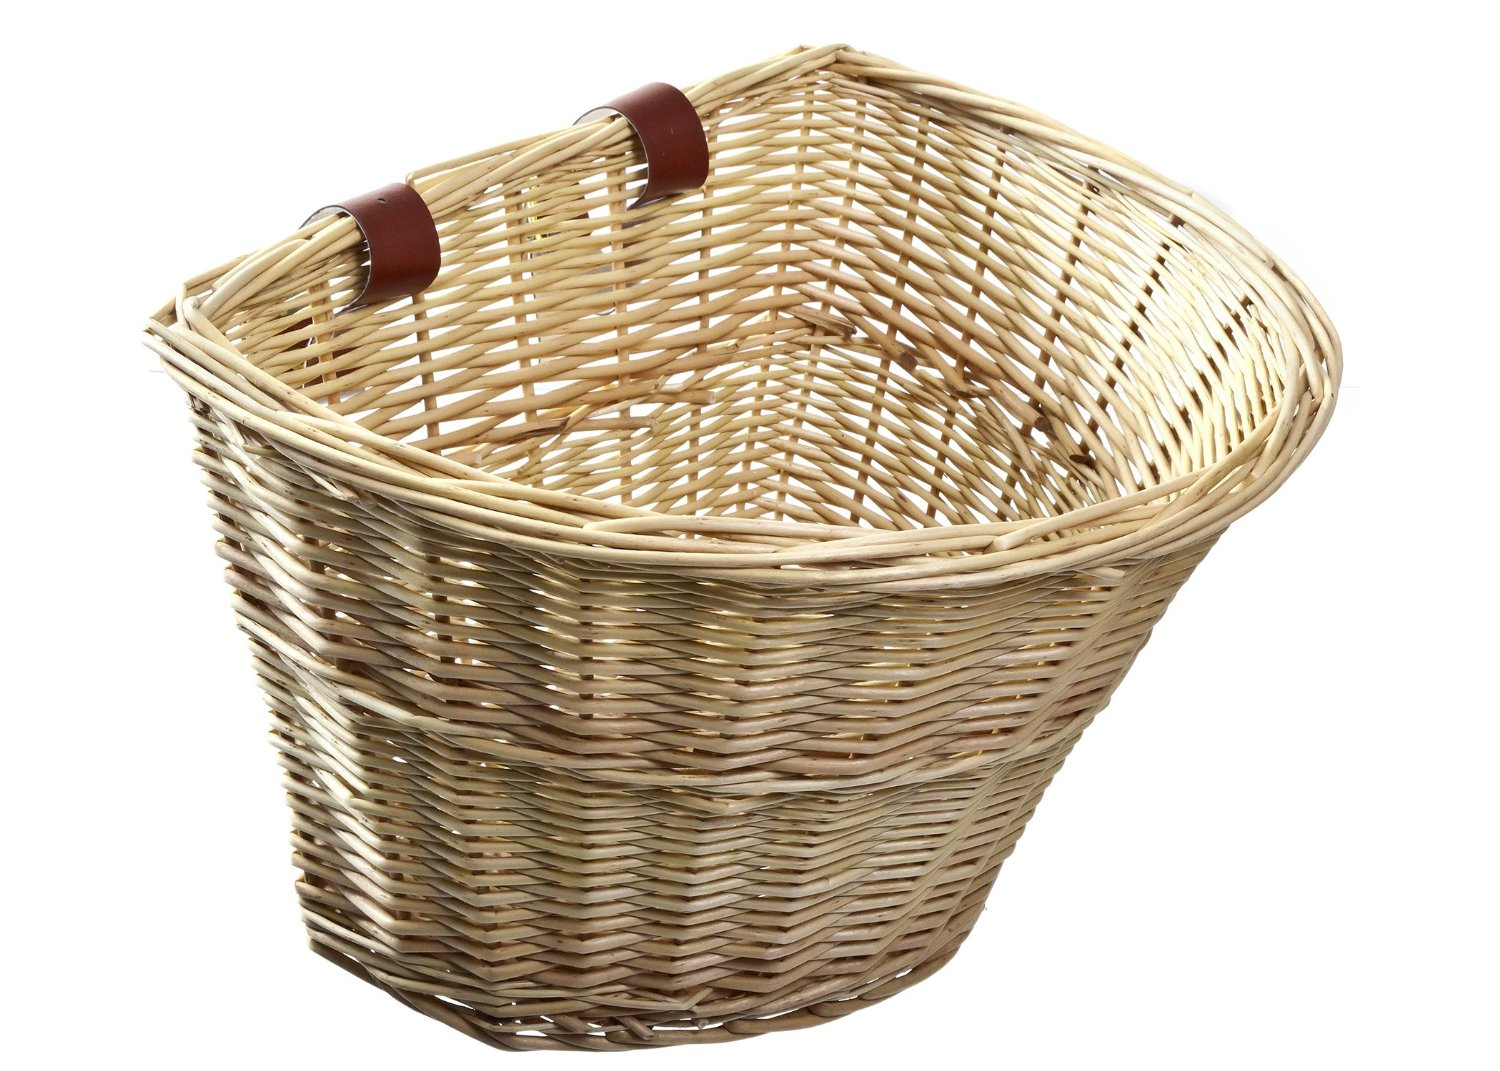 BIKE BICYCLE BASKET WICKER NATURAL FRONT ONE CLICK WITH HANDLE LARGE USEFUL